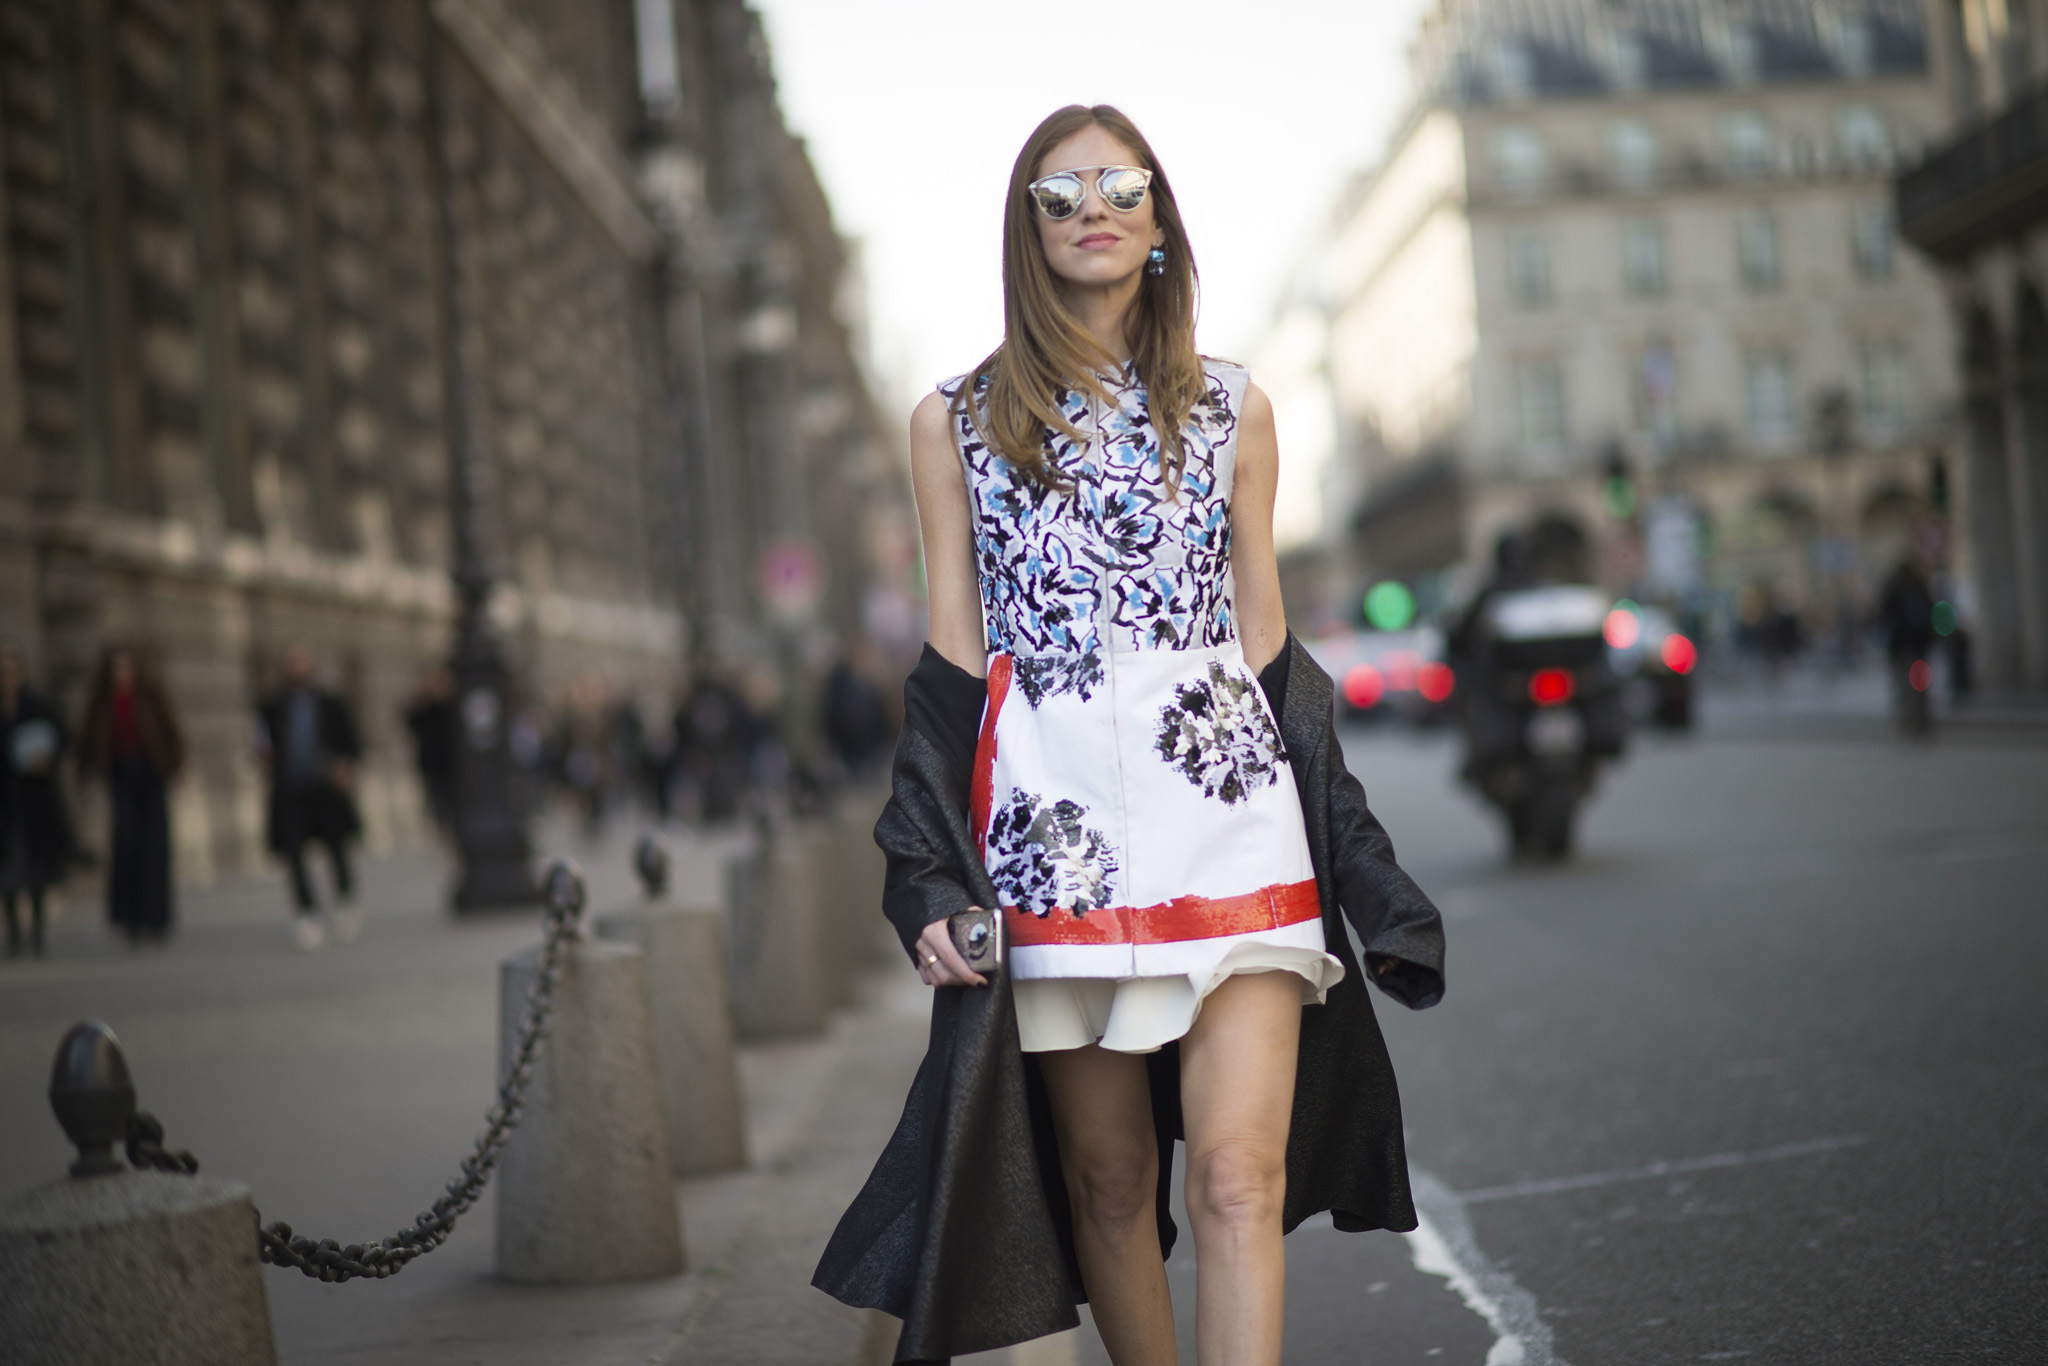 Óculos de sol  Dior So Real imagem: street style via indigitalimages.com